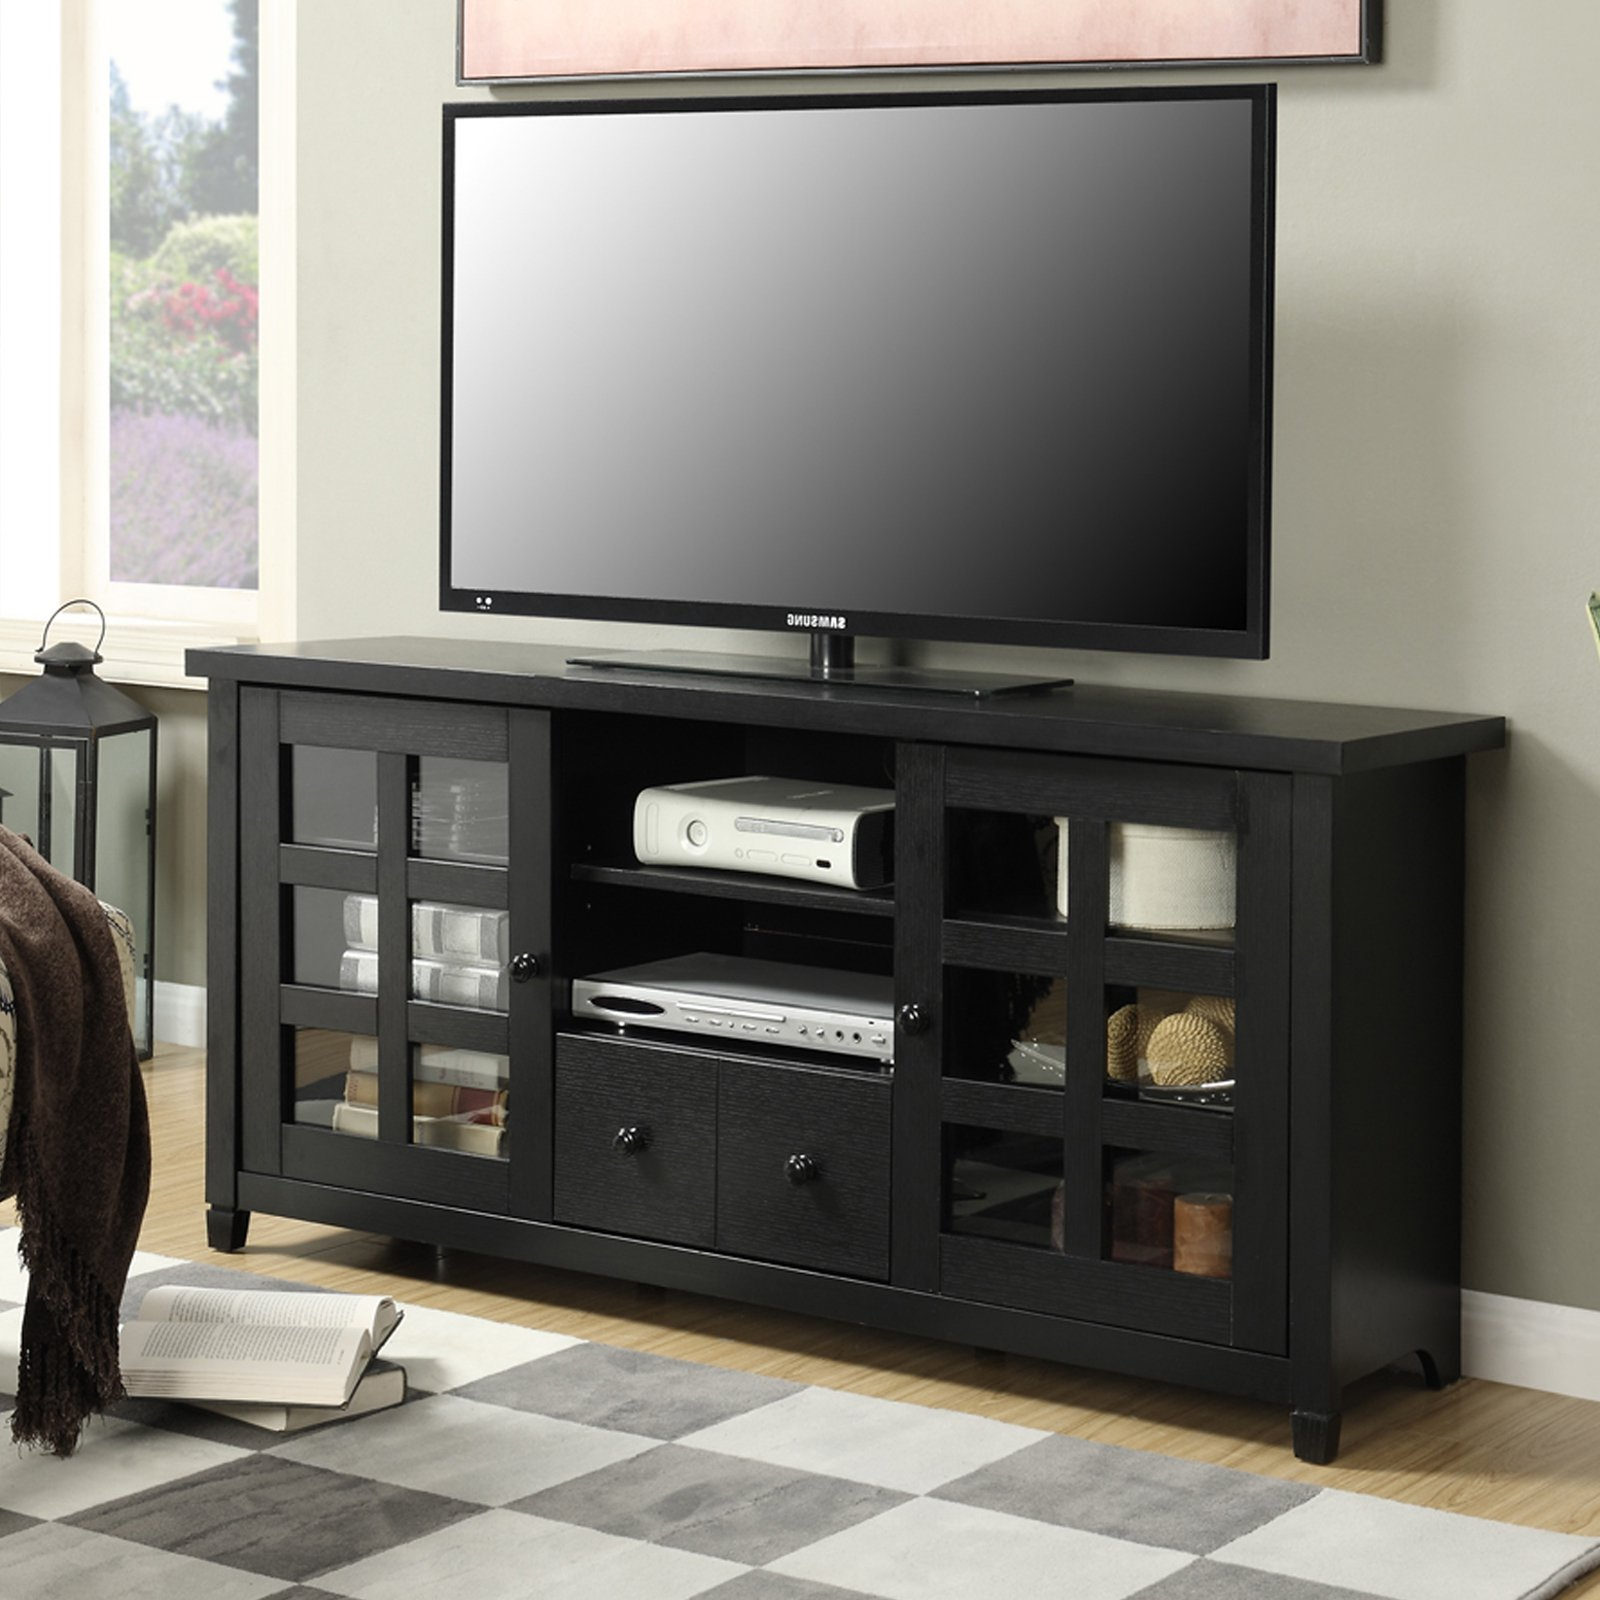 Tv Stands & Entertainment Centers | Hayneedle Throughout Murphy 72 Inch Tv Stands (View 6 of 20)